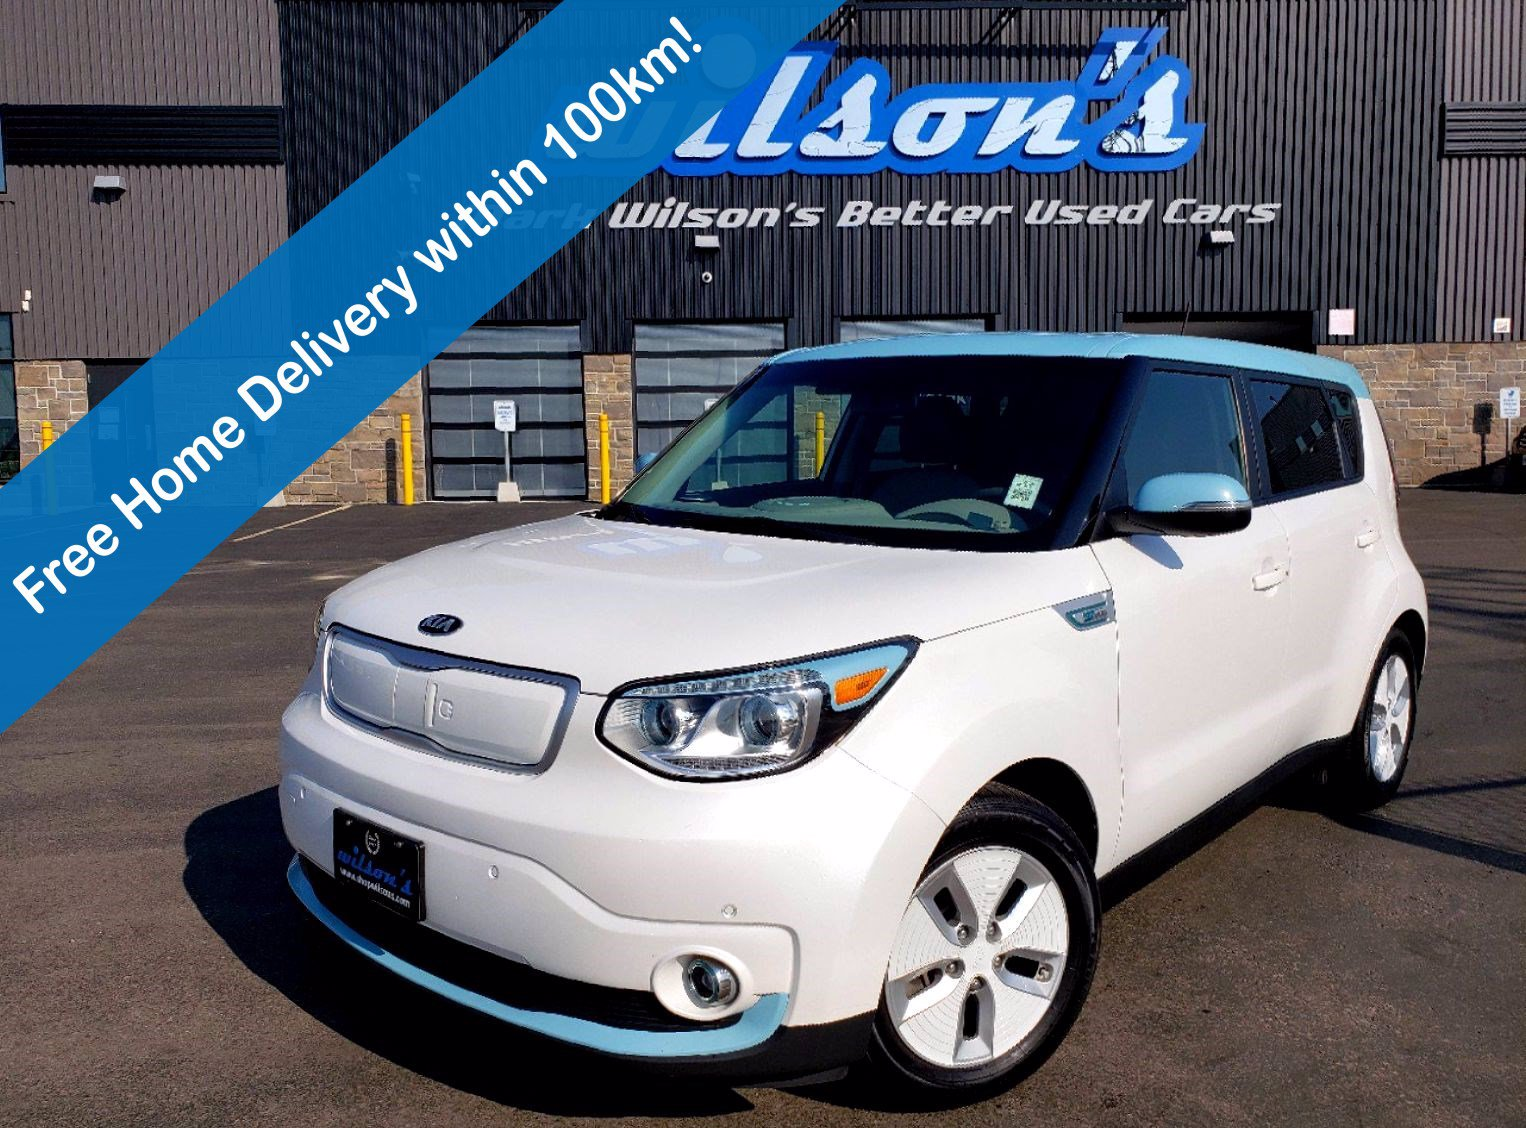 Certified Pre-Owned 2016 Kia Soul EV Luxury, Leather, Navigation, Heated Steering, Heated + Cooled Seats, Rear Camera and more!